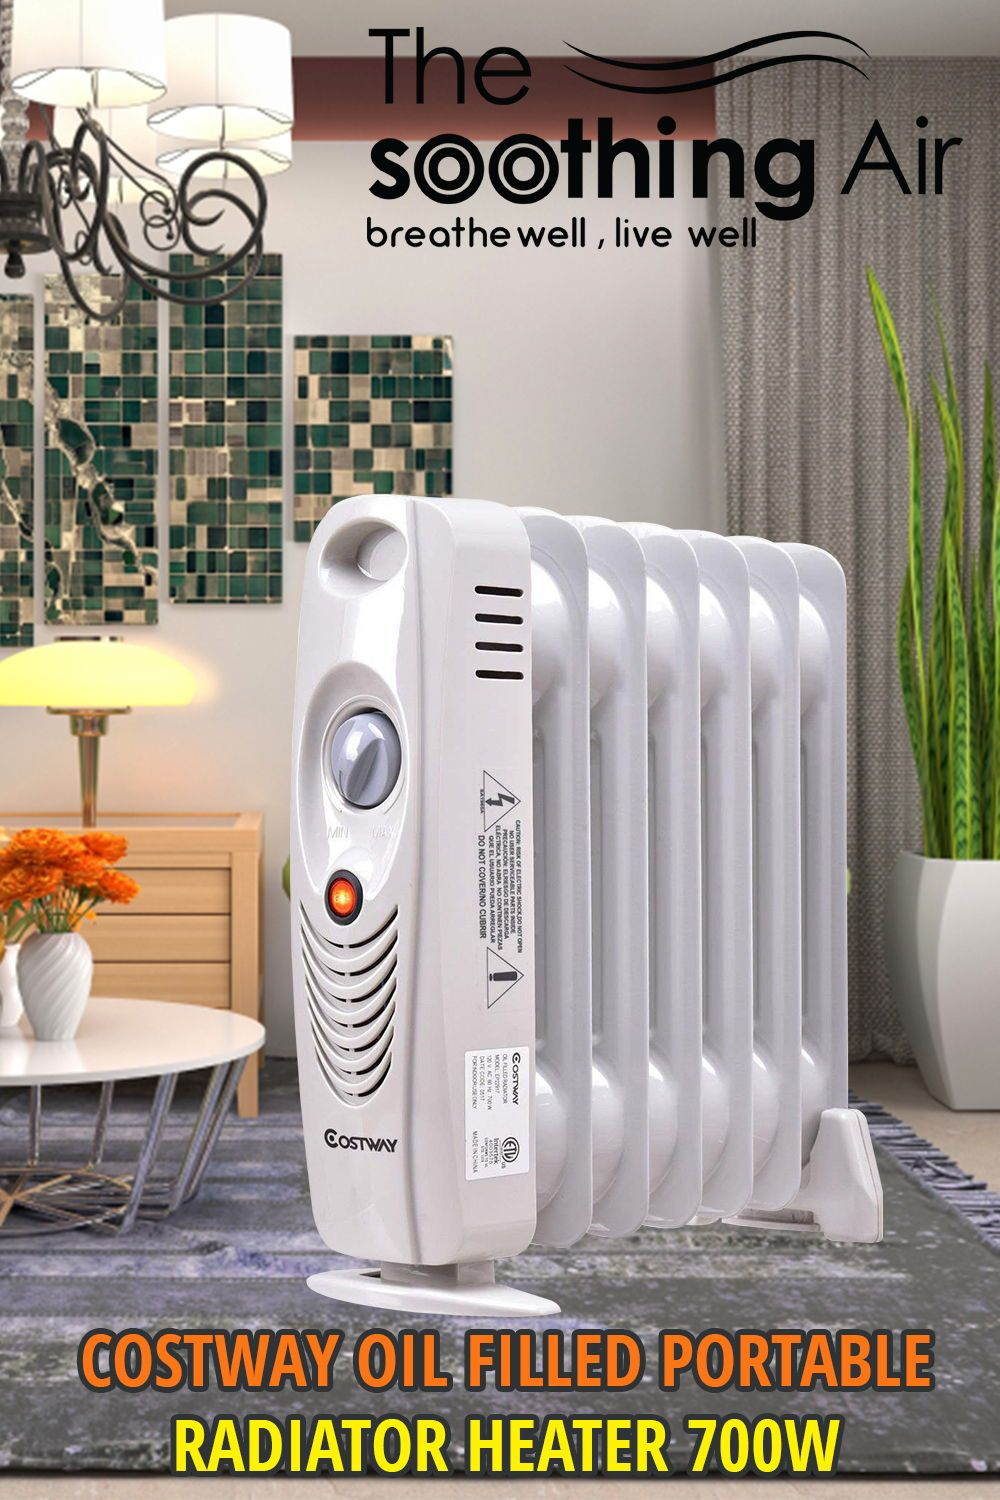 Top 10 Oil Filled Radiant Heaters Feb 2020 Reviews And Buyers Guide Heater Oil Heater Oil Filled Radiator